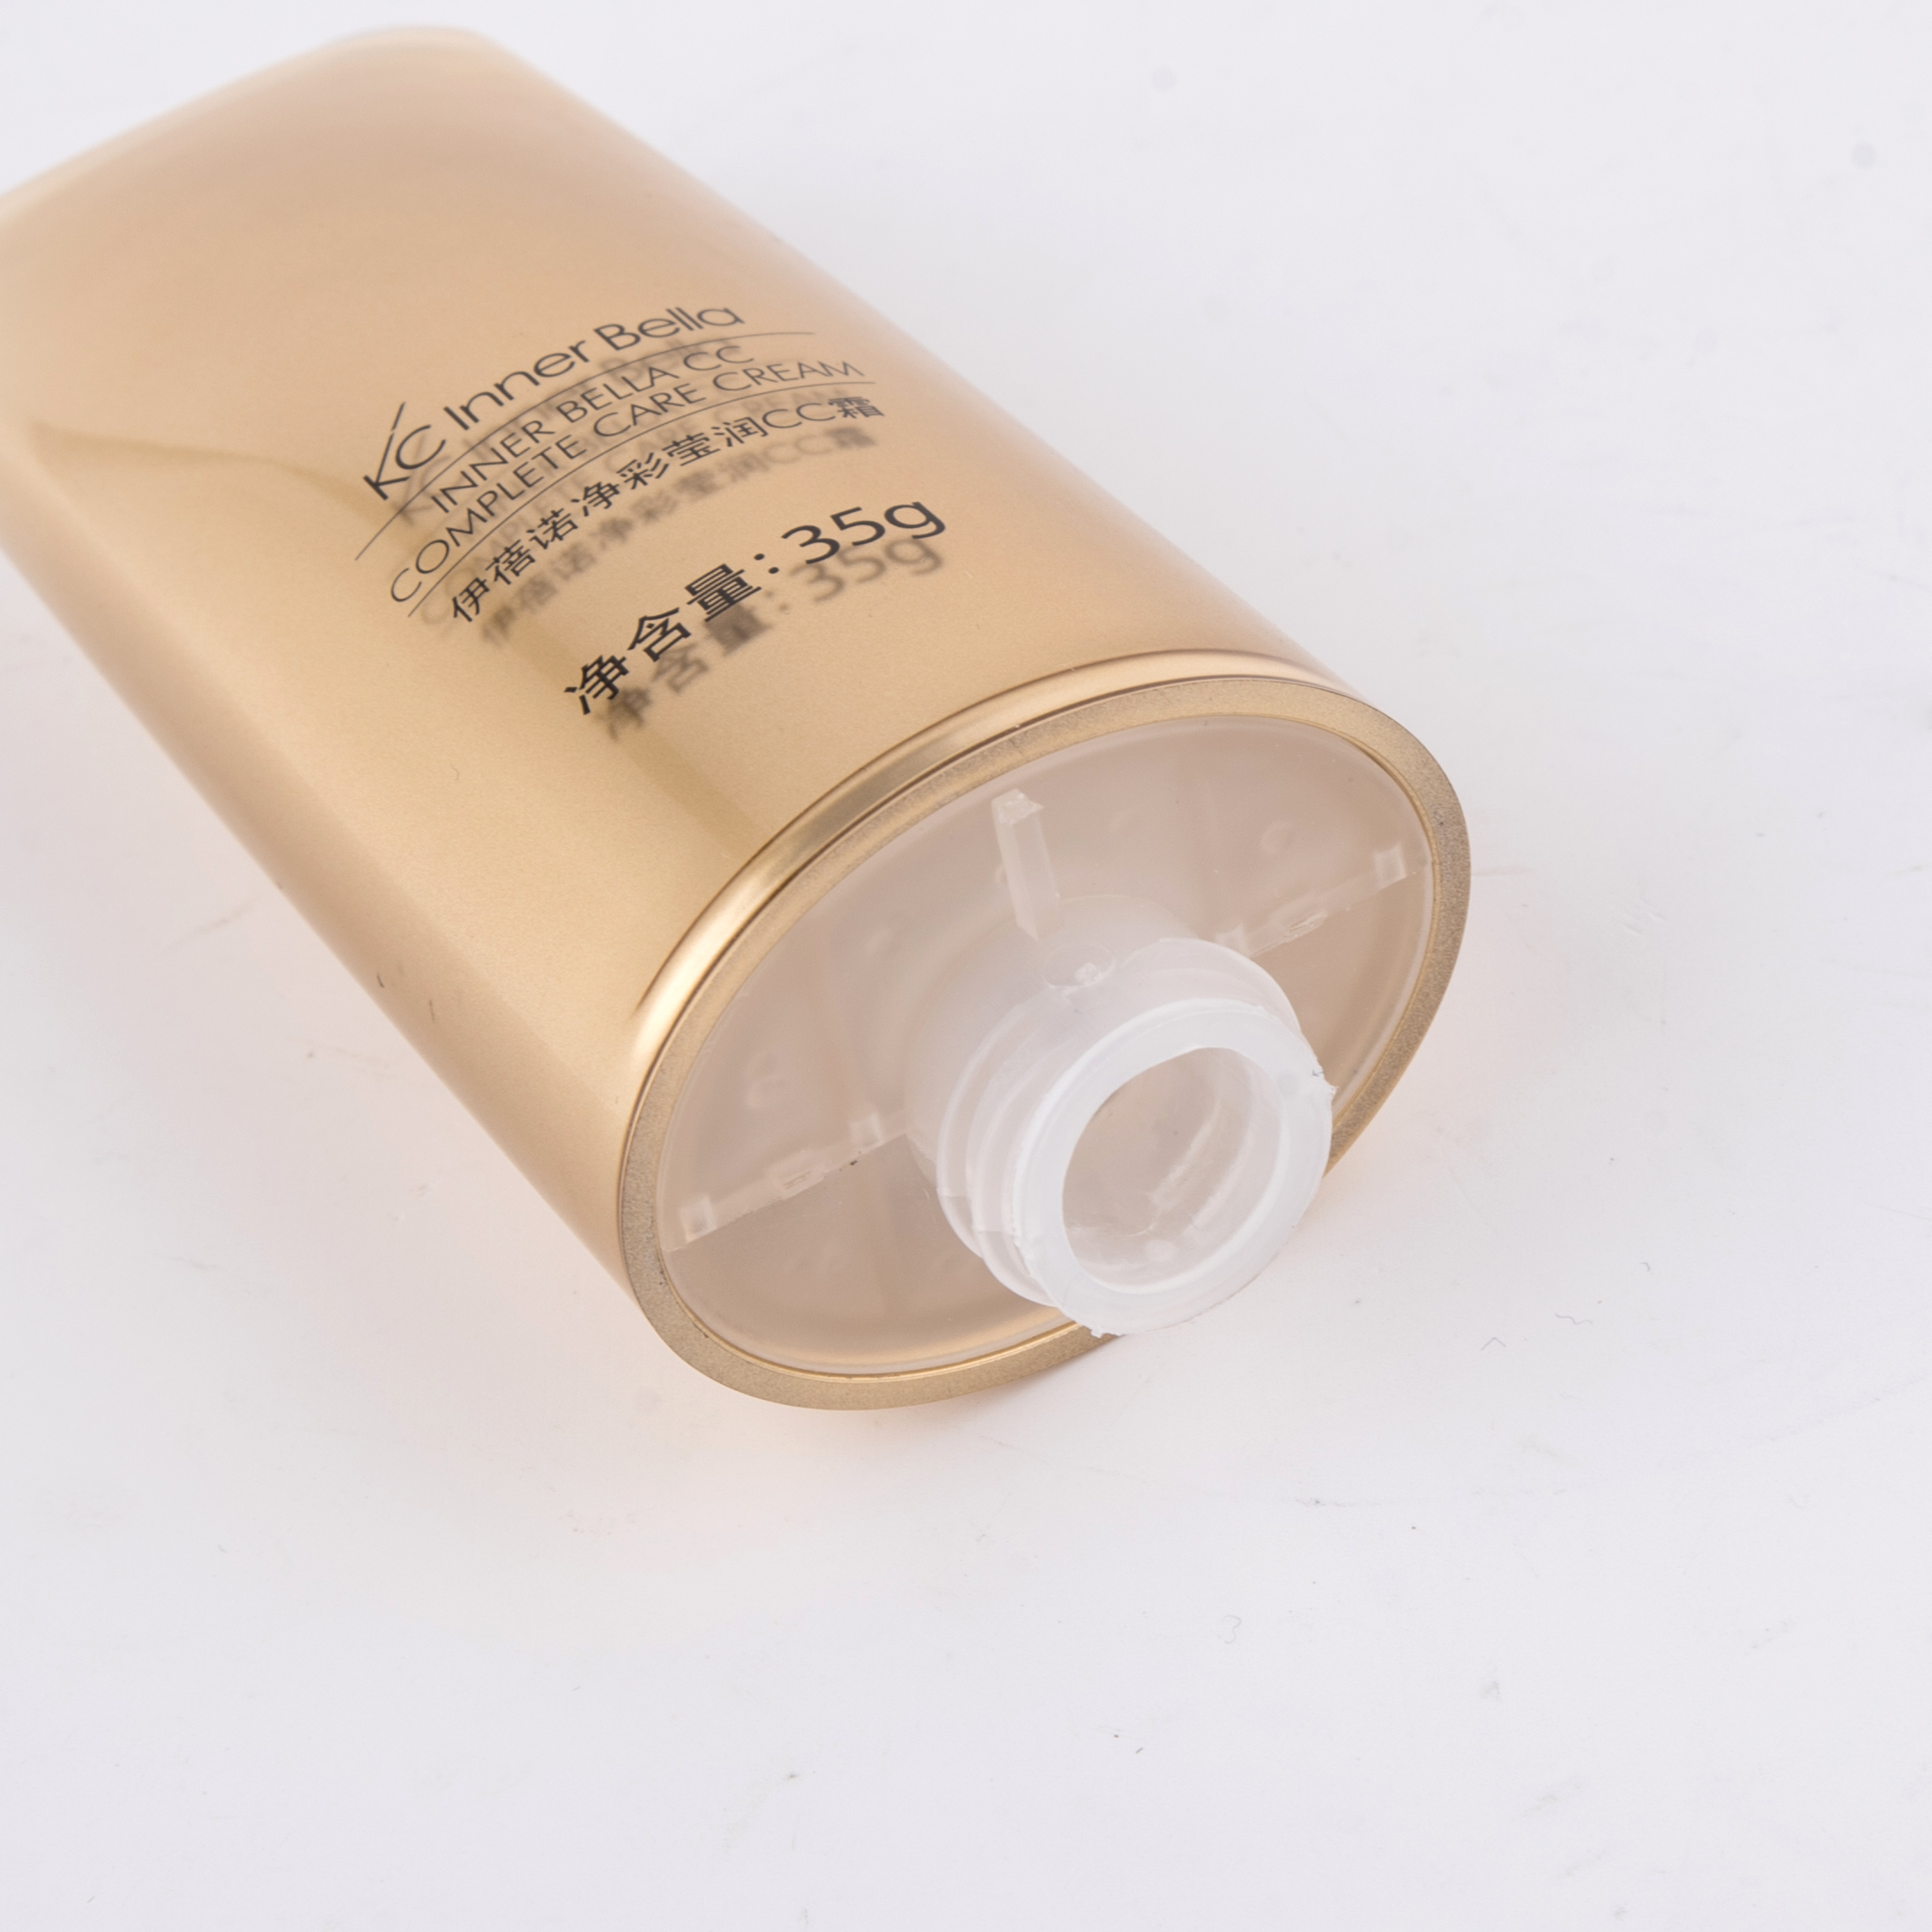 Empty 35g Hand BB Cream Tube